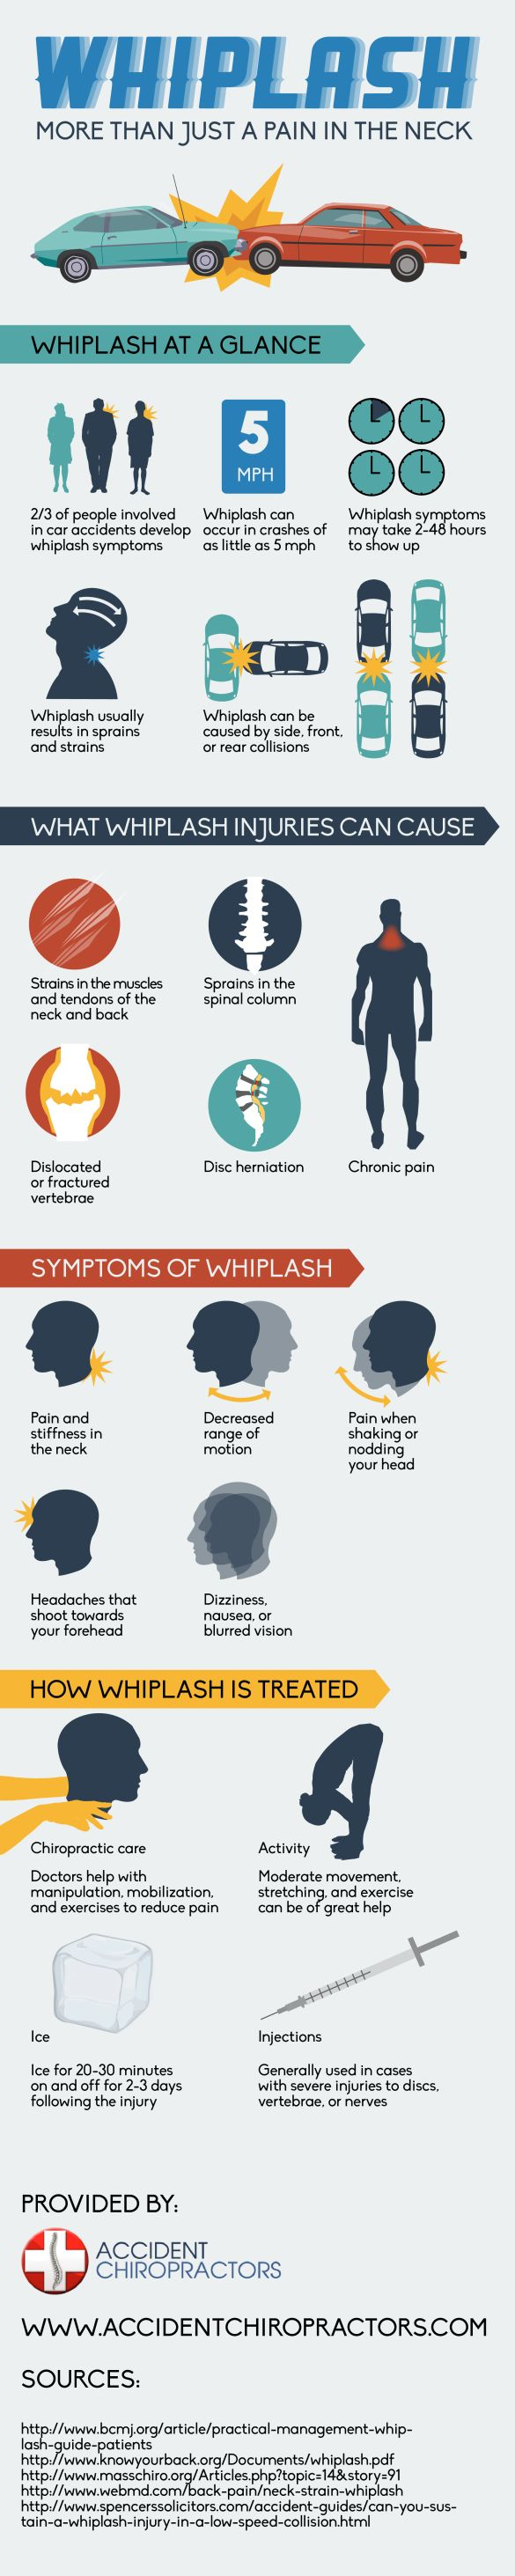 Whiplash: More Than Just a Pain in the Neck   #infographic #NeckPain #Health